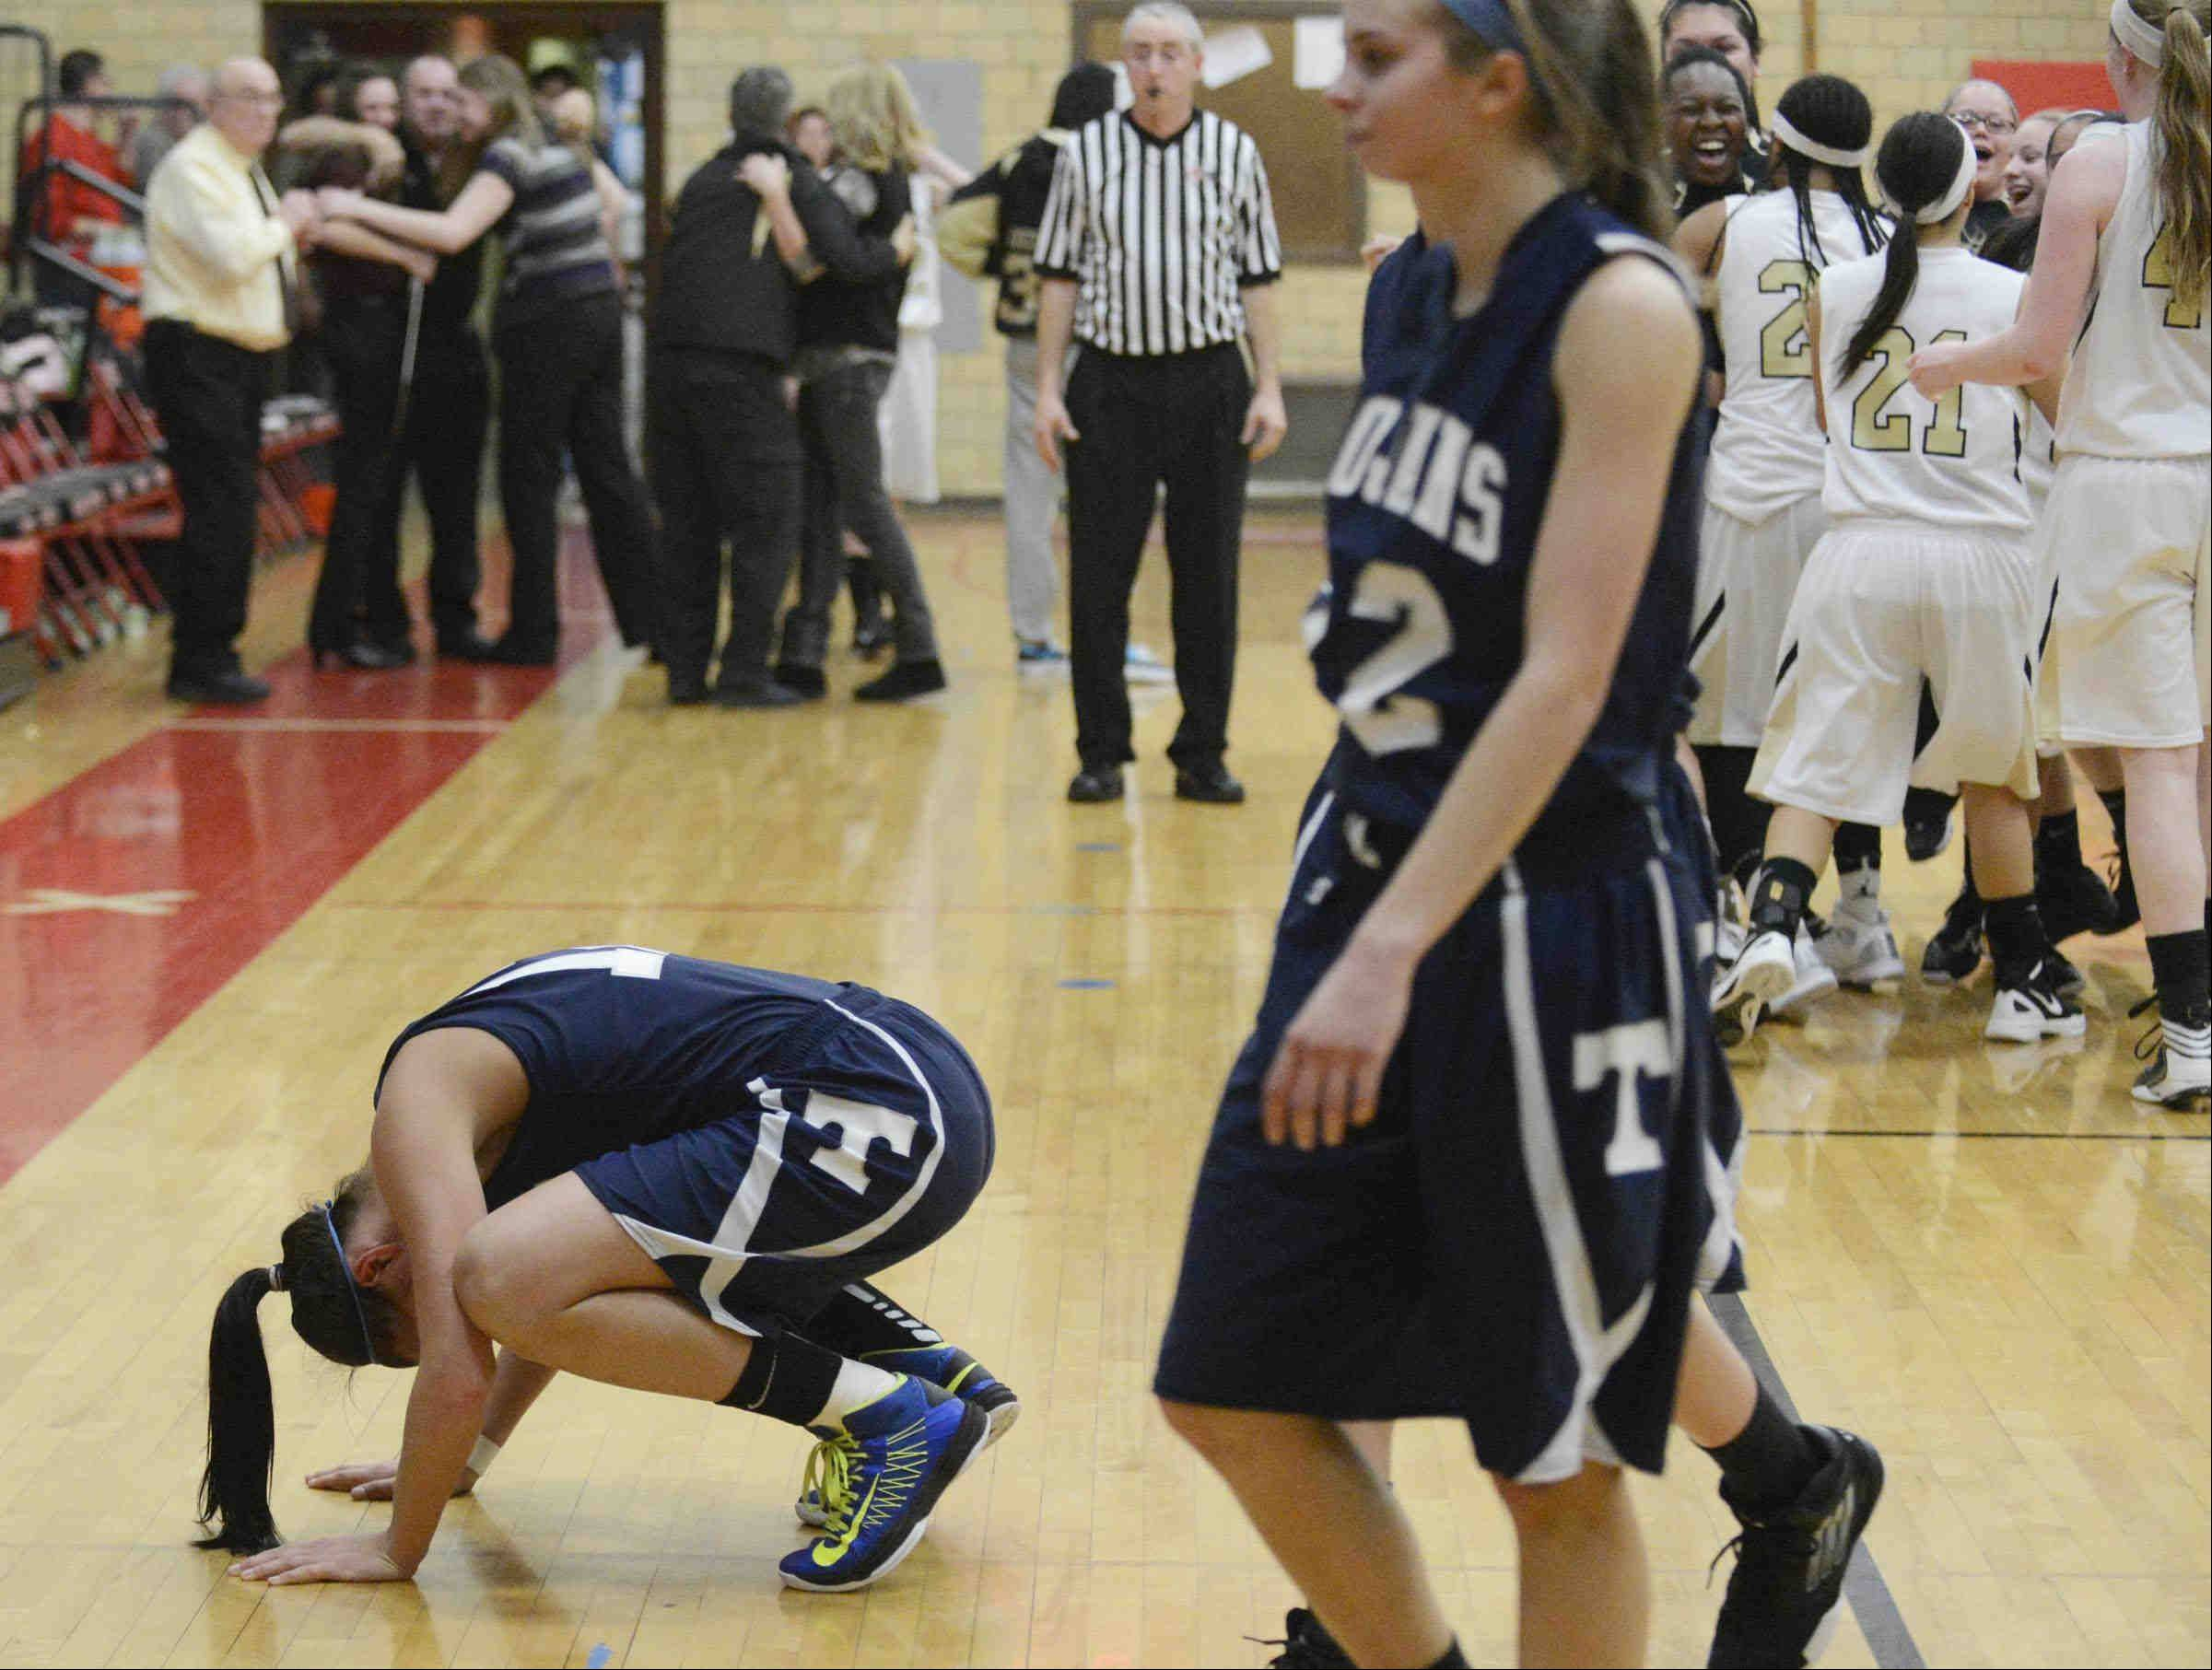 Cary-Grove's Joslyn Nicholson falls to the floor at the end of the Trojan's loss to Streamwood Monday in the Class 4A sectional game in Rockford.